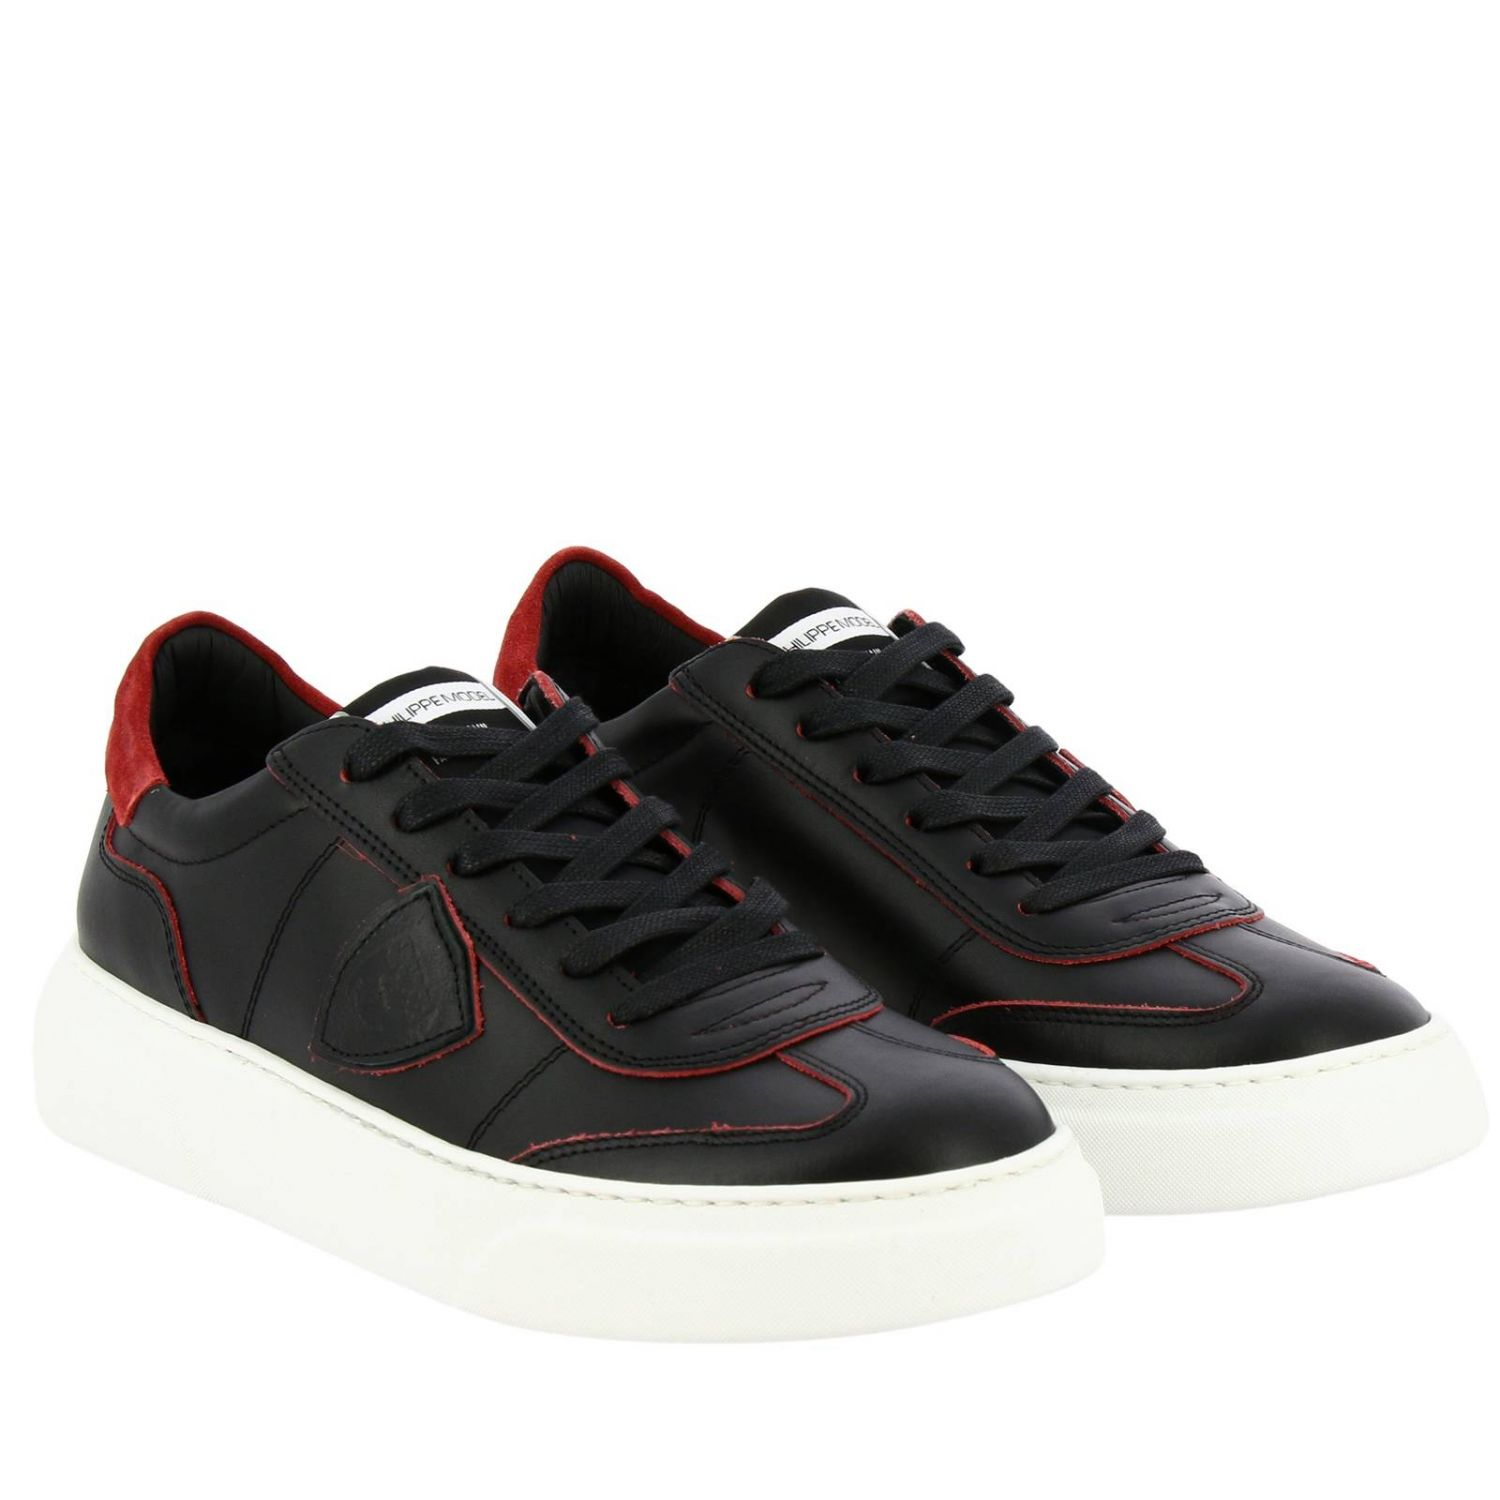 Sneakers Temple Philippe Model stringata in pelle liscia nero 2